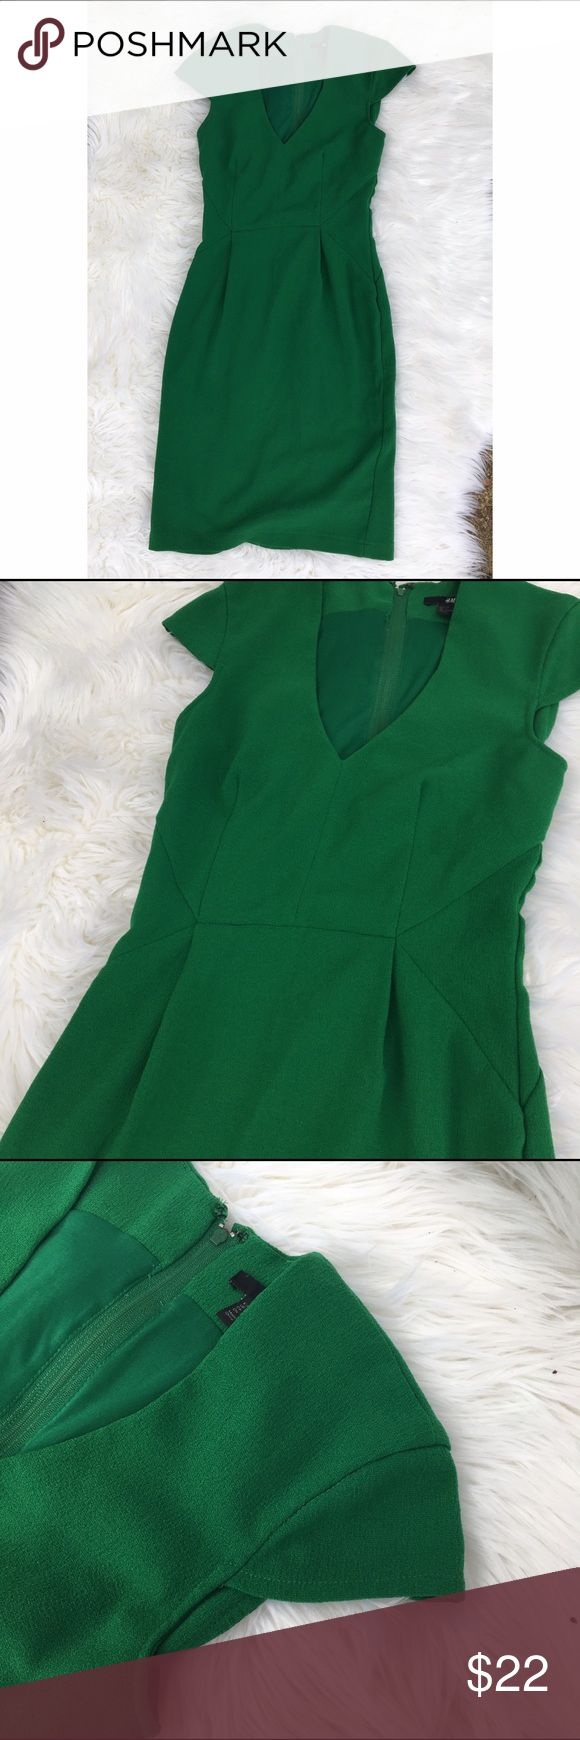 H&M green cap sleeve dress size 4 Beautiful Kelly green dress in a fitting bodice style. Short to midi length. Will hit just above or below knee depending on height. Zips up the back. Perfect for work, church, or a night out! H&M Dresses Midi